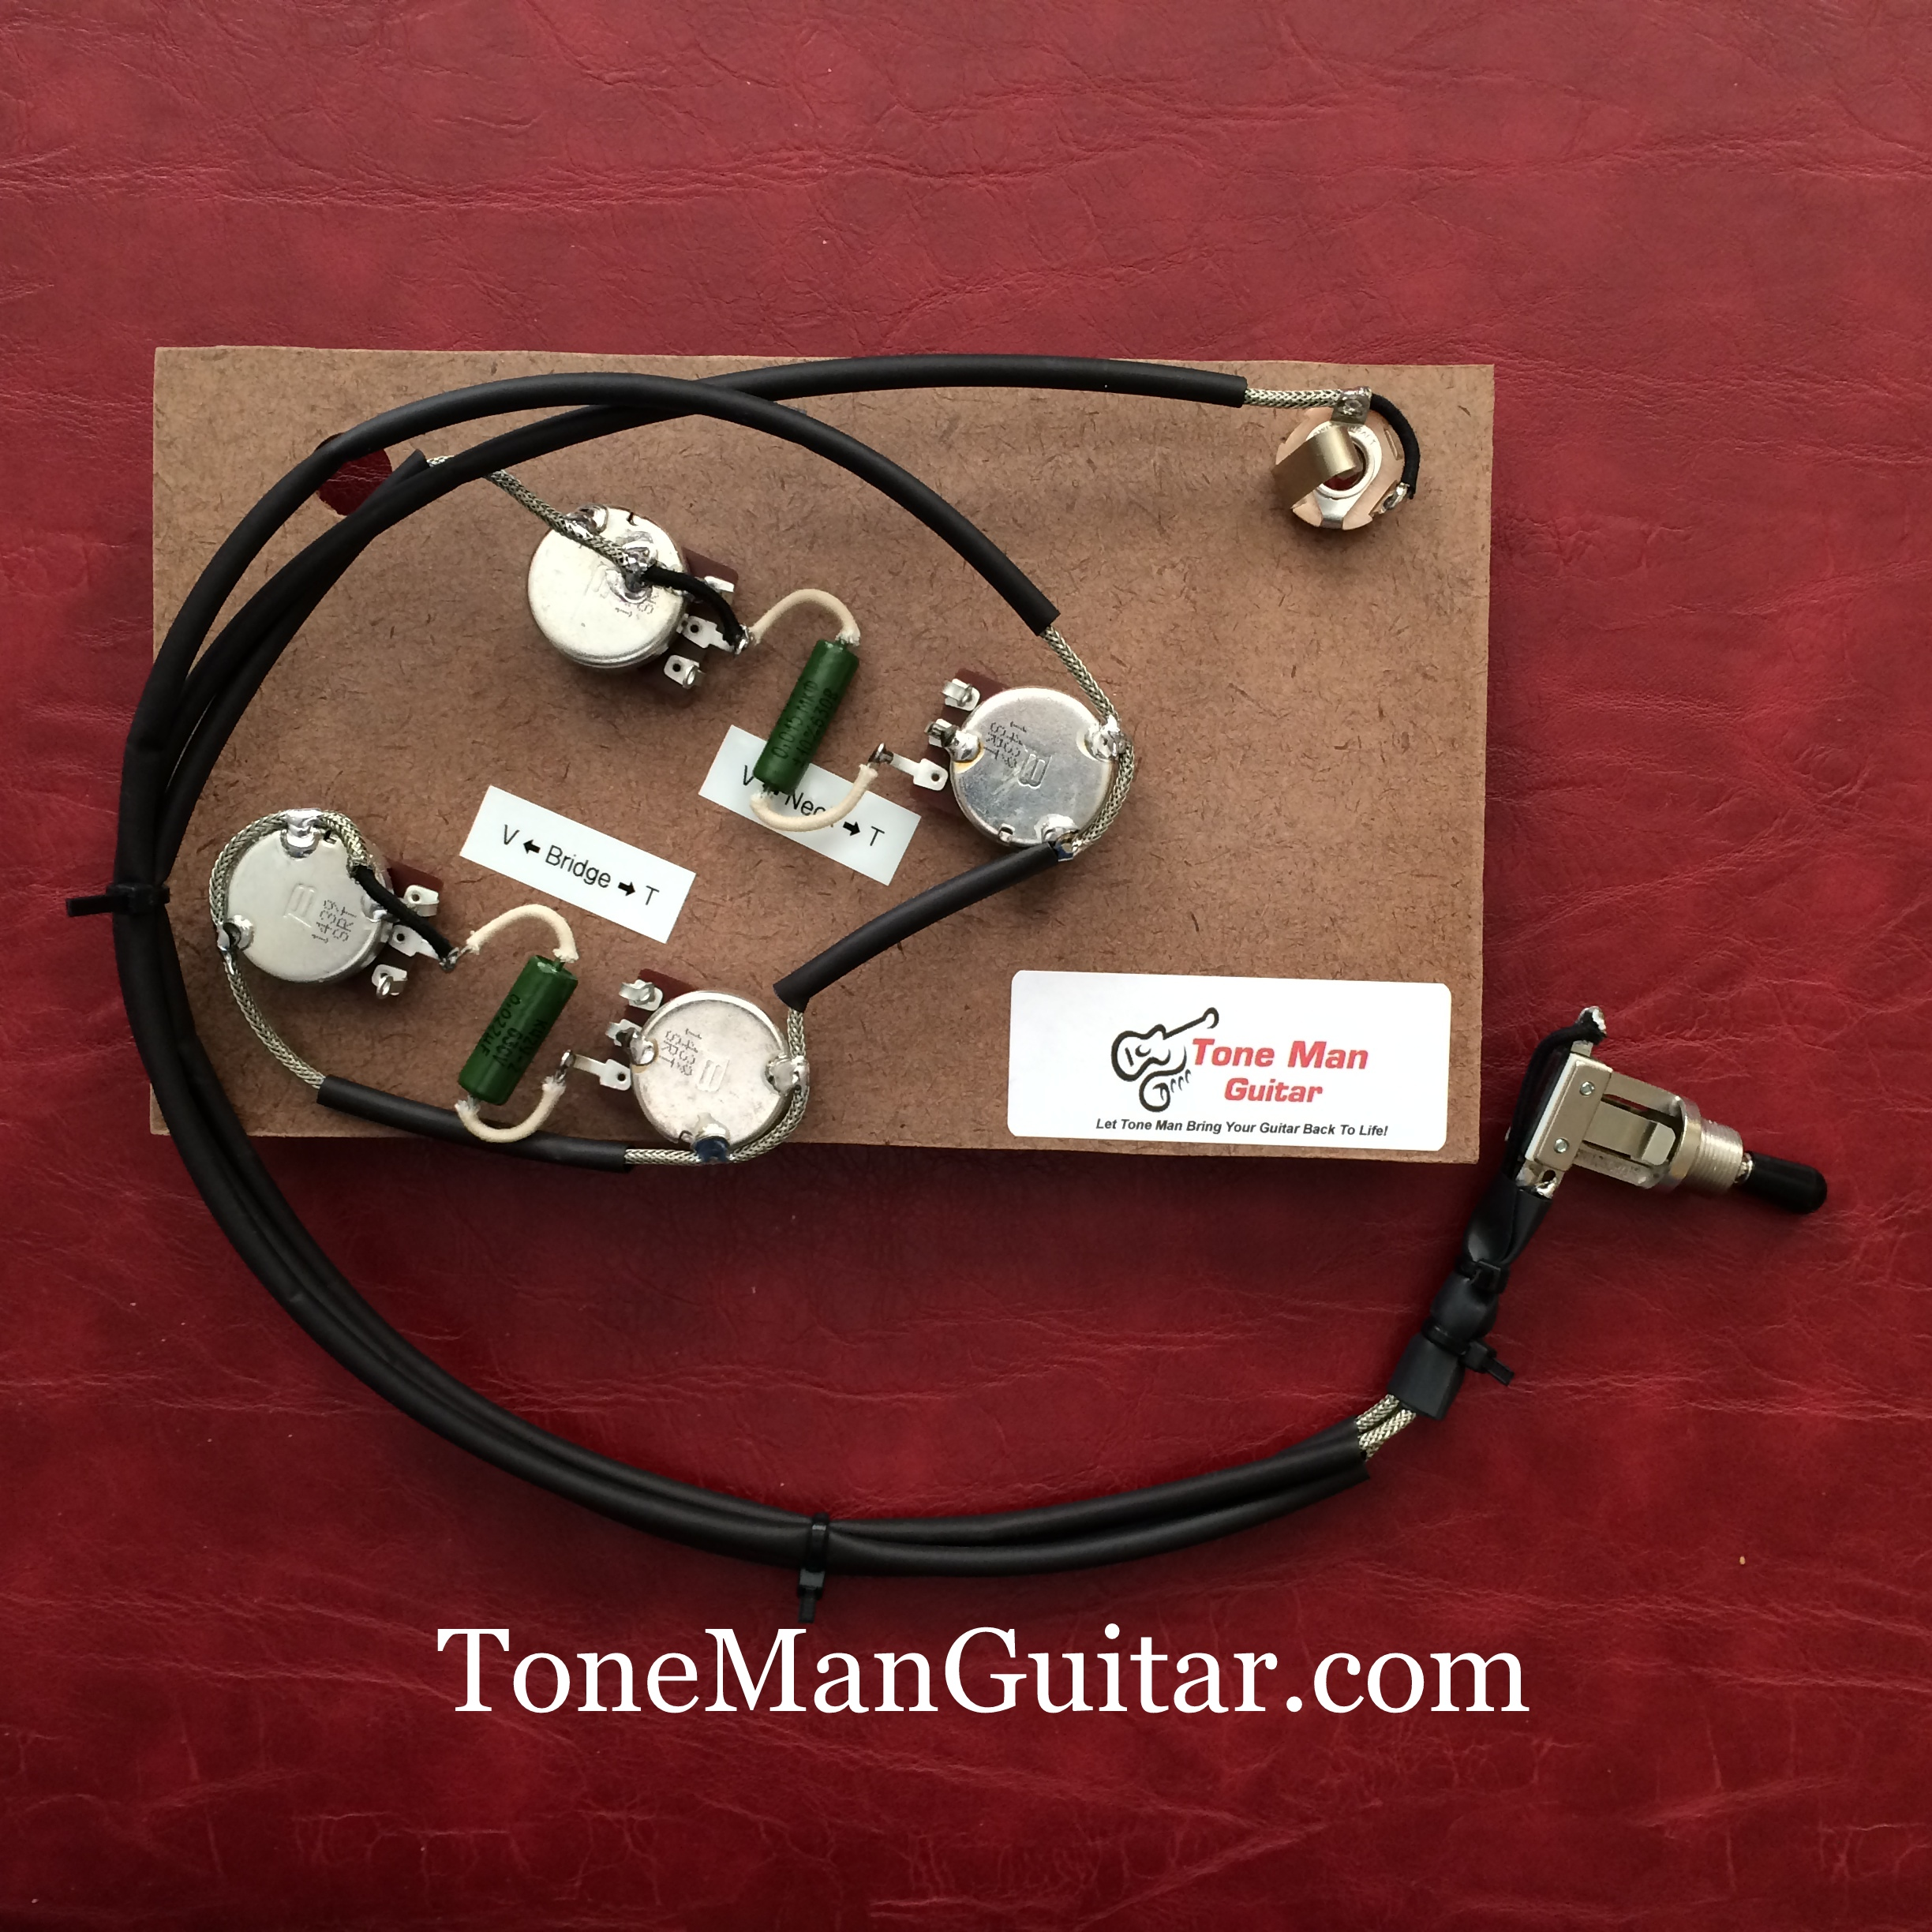 Gibson 50s Wiring Kit The Portal And Forum Of Diagram Diagrams For Epiphone Sg Es175 Es295 Prebuilt Upgrade Pio Tone Rh Tonemanguitar Com Vintage Les Paul